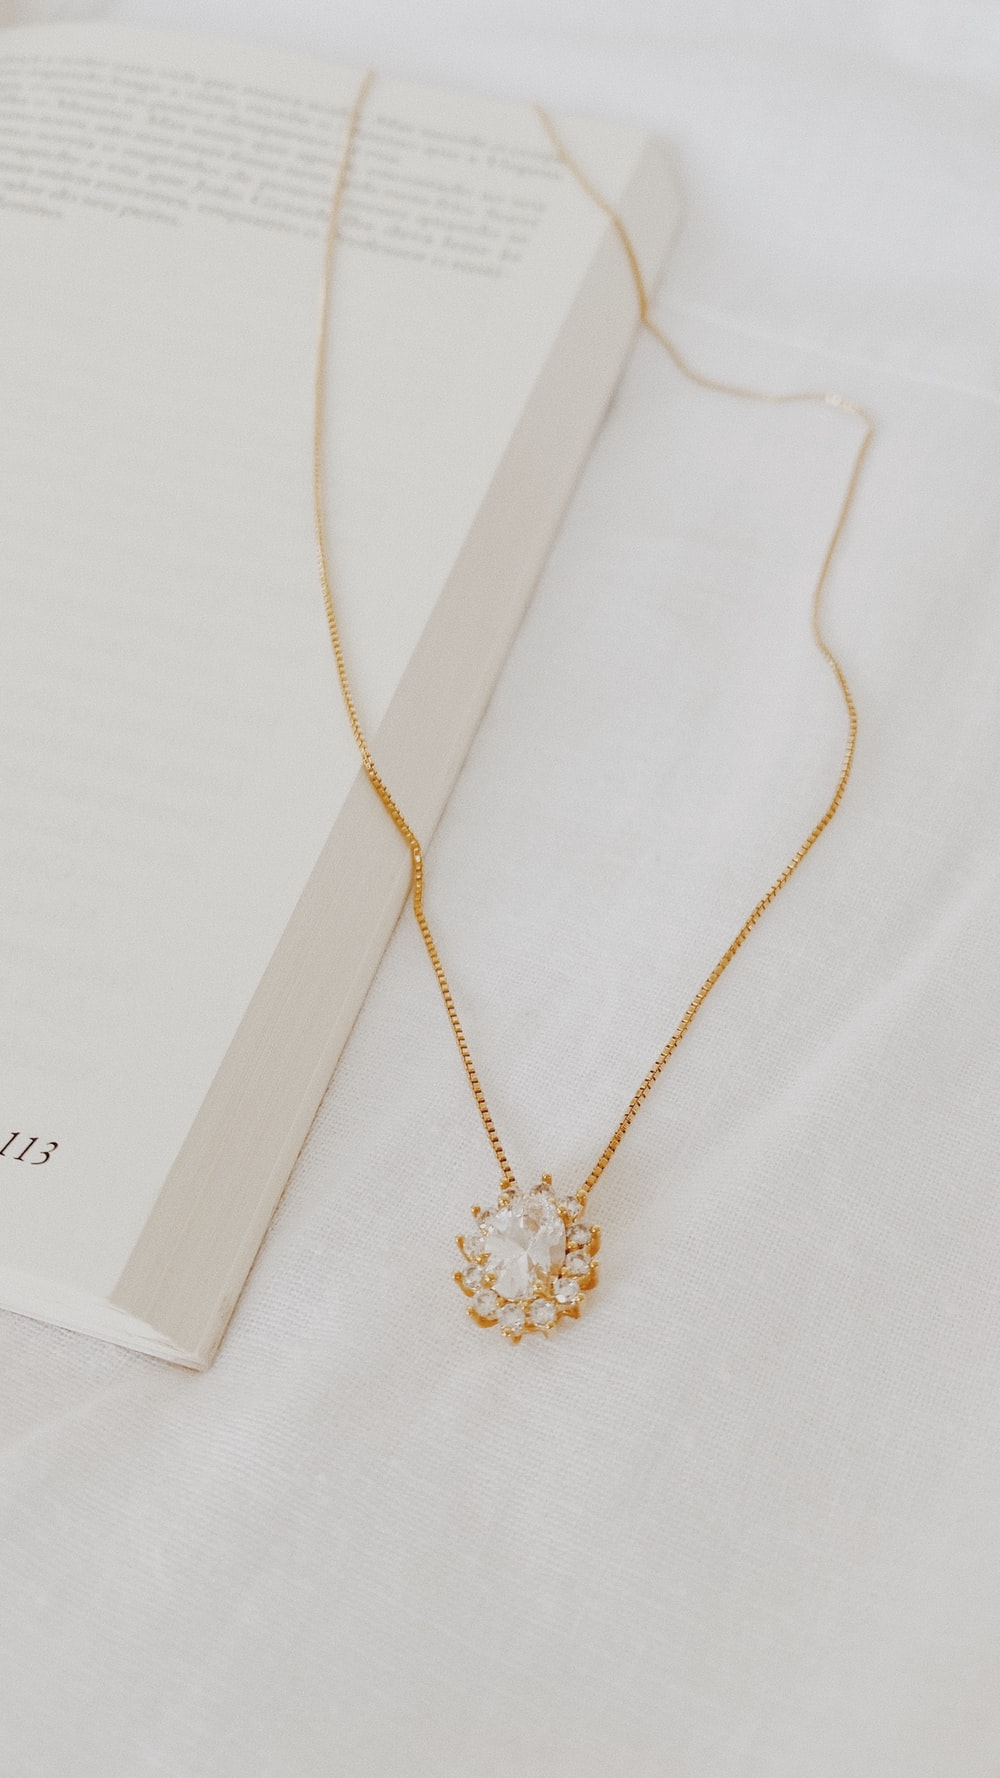 gold necklace on white paper